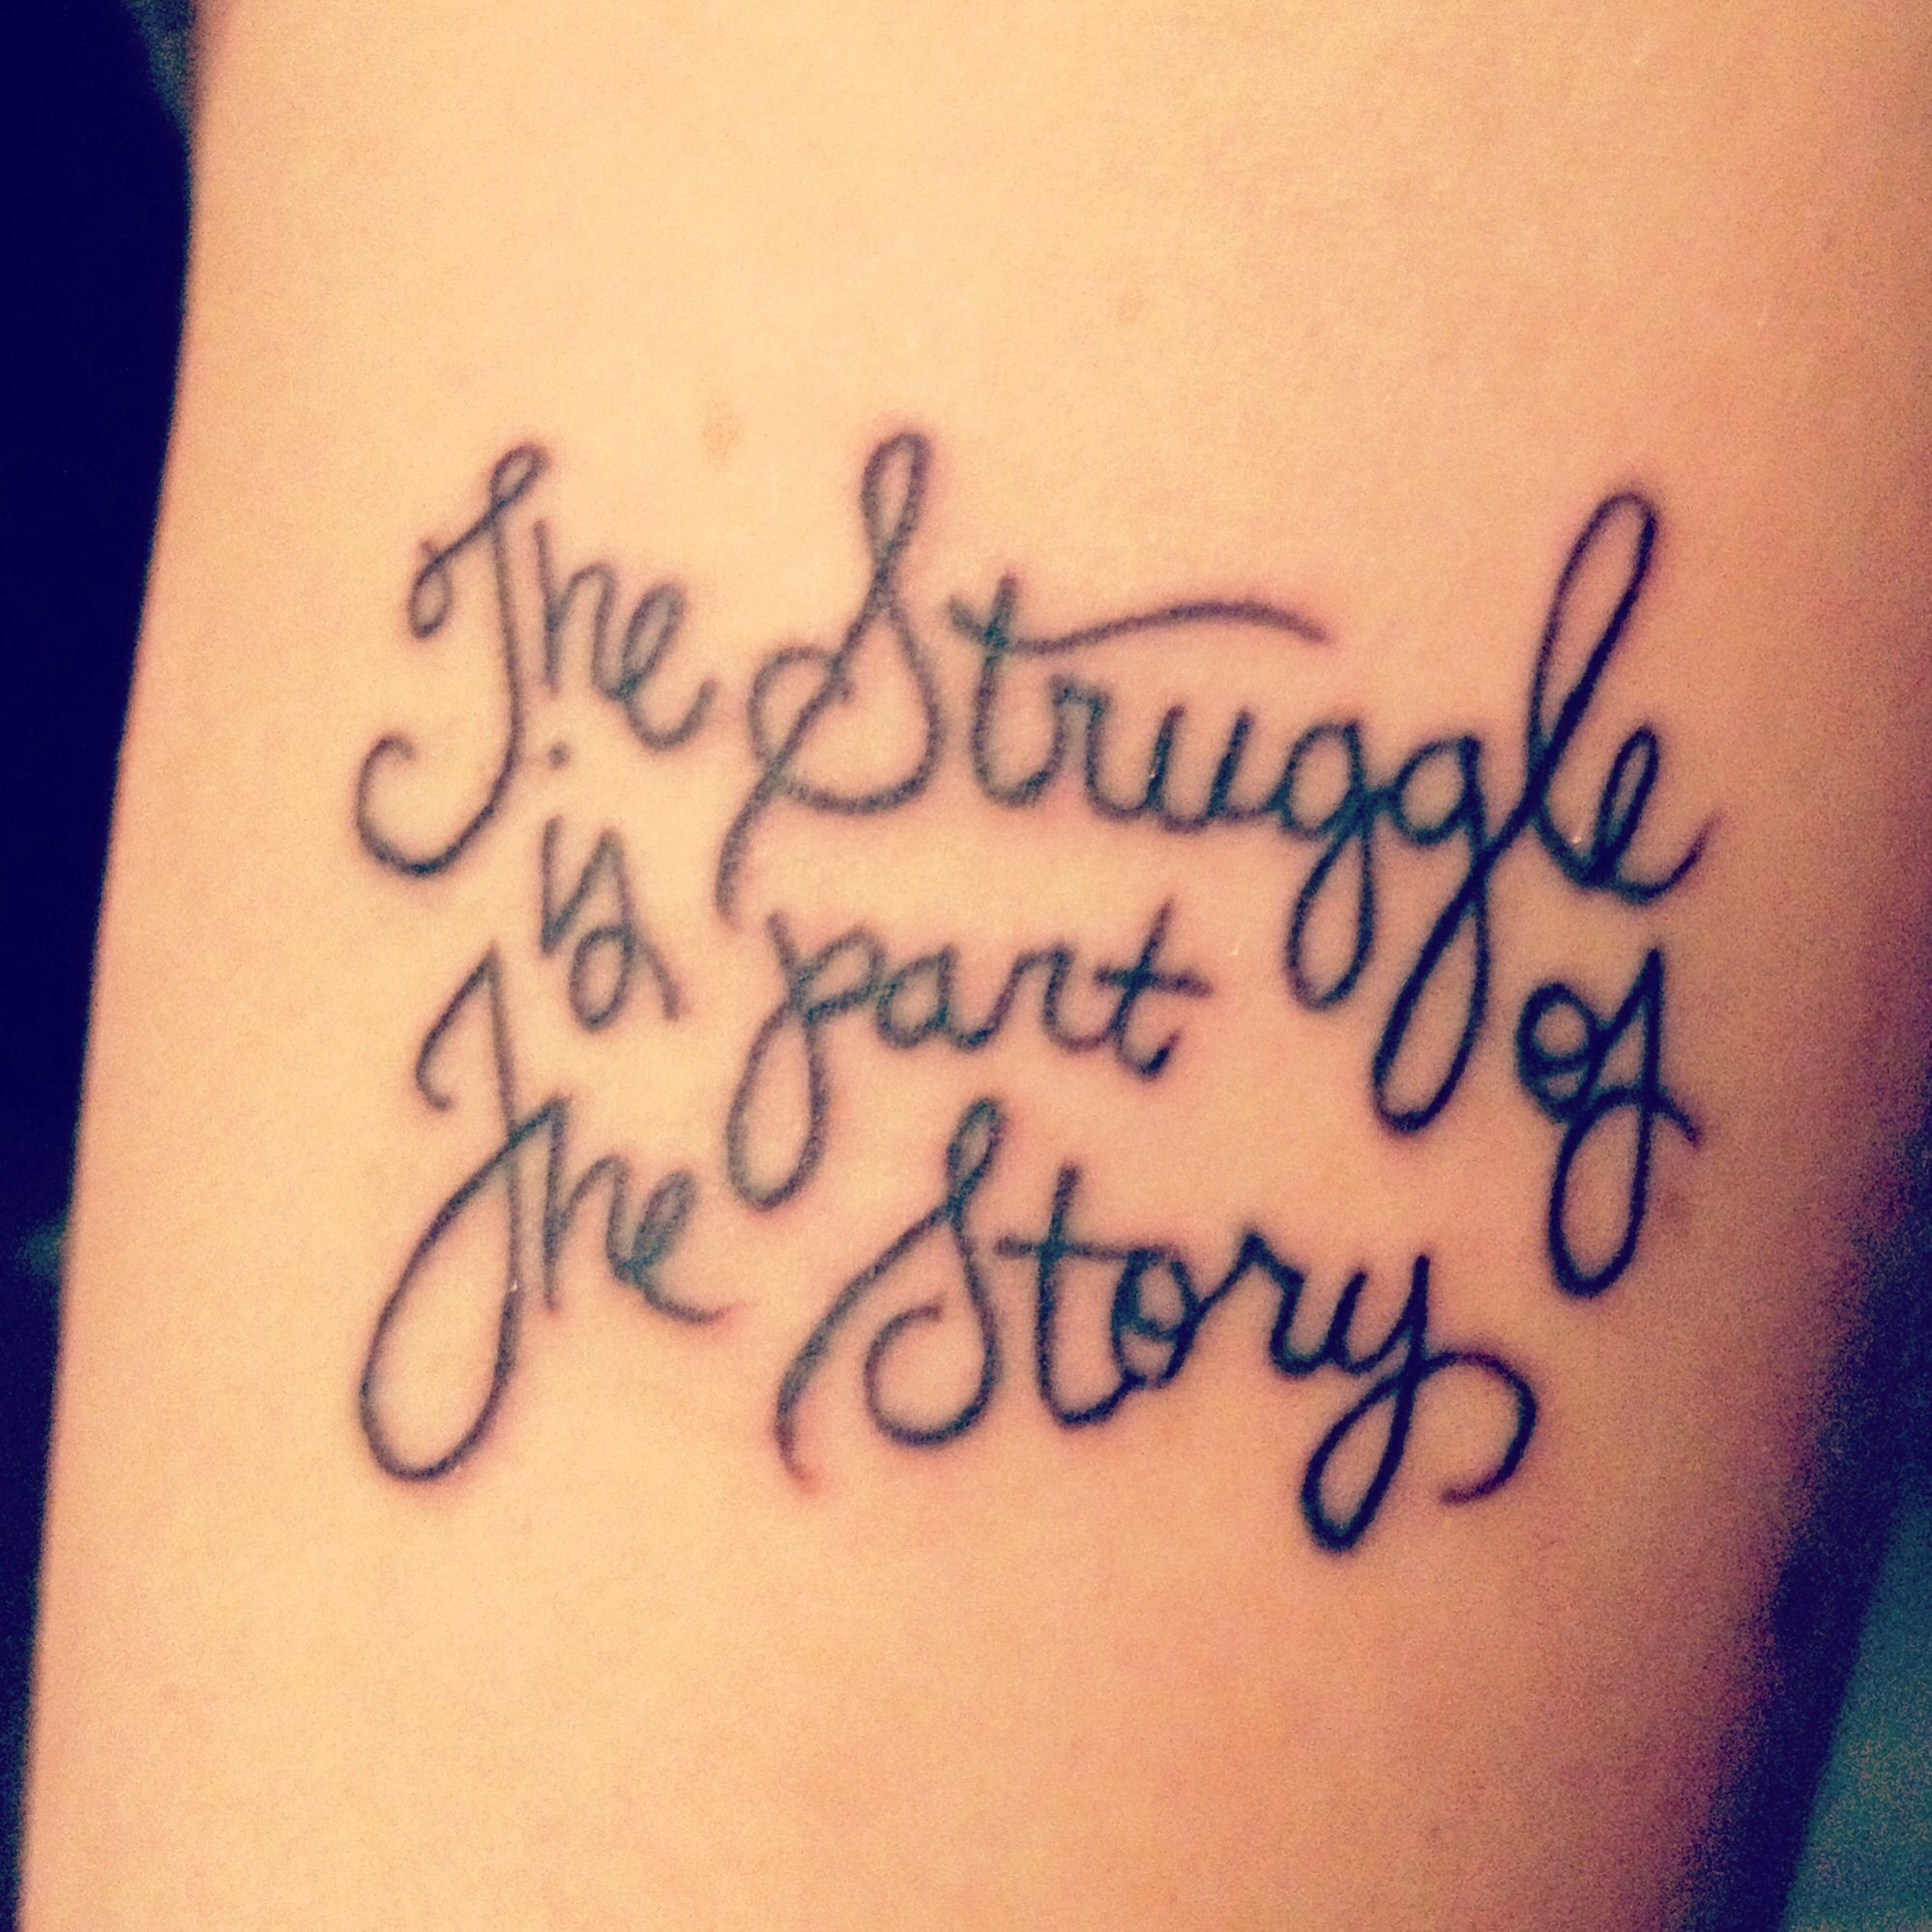 Vintage Tattoo Quotes On Arm: The Struggle Strengthens The Roots